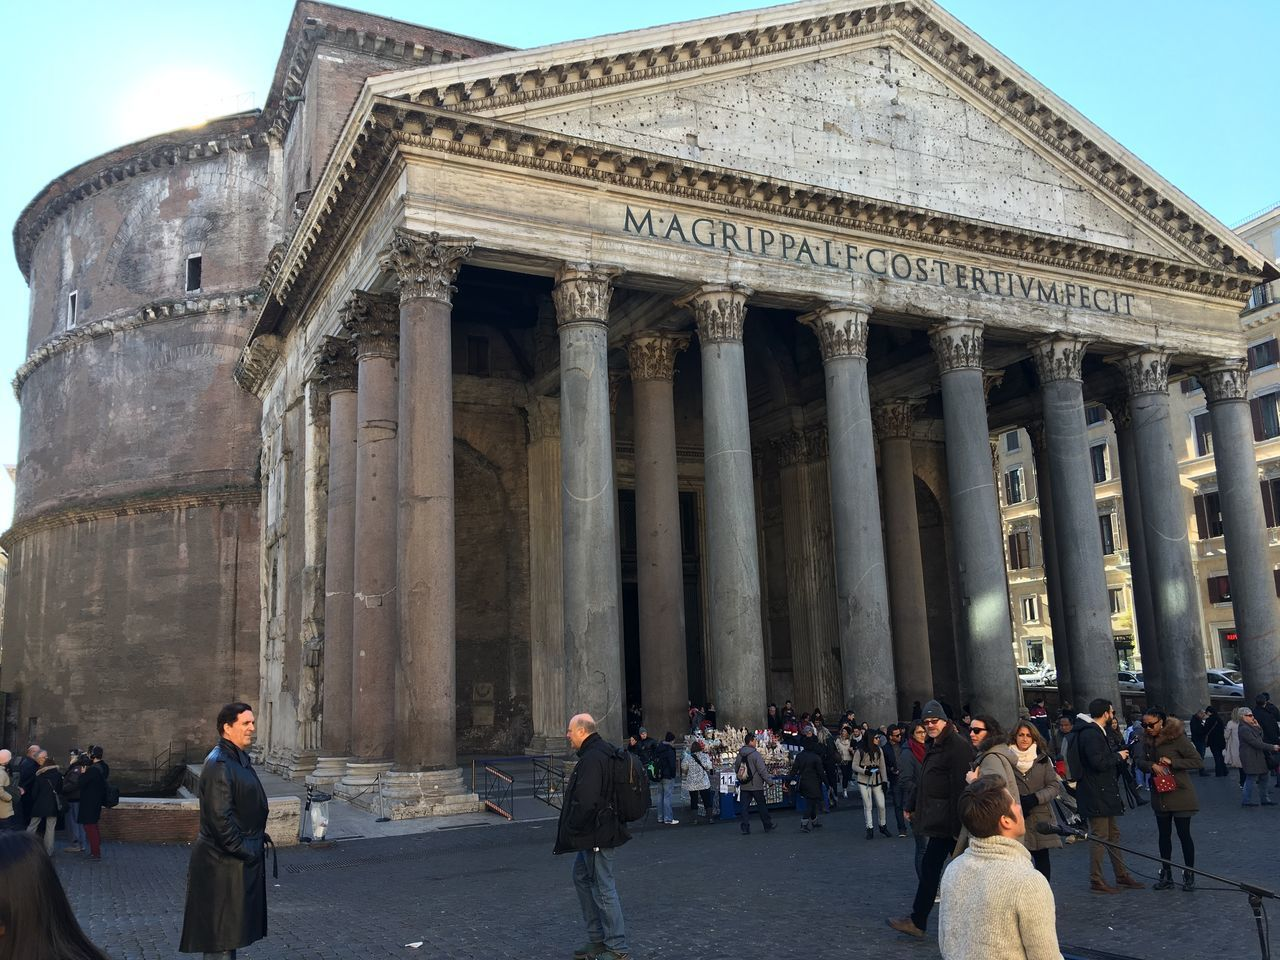 #culture #italy #oldbuildings #Pantheon #Rome #sightseeing #tourism